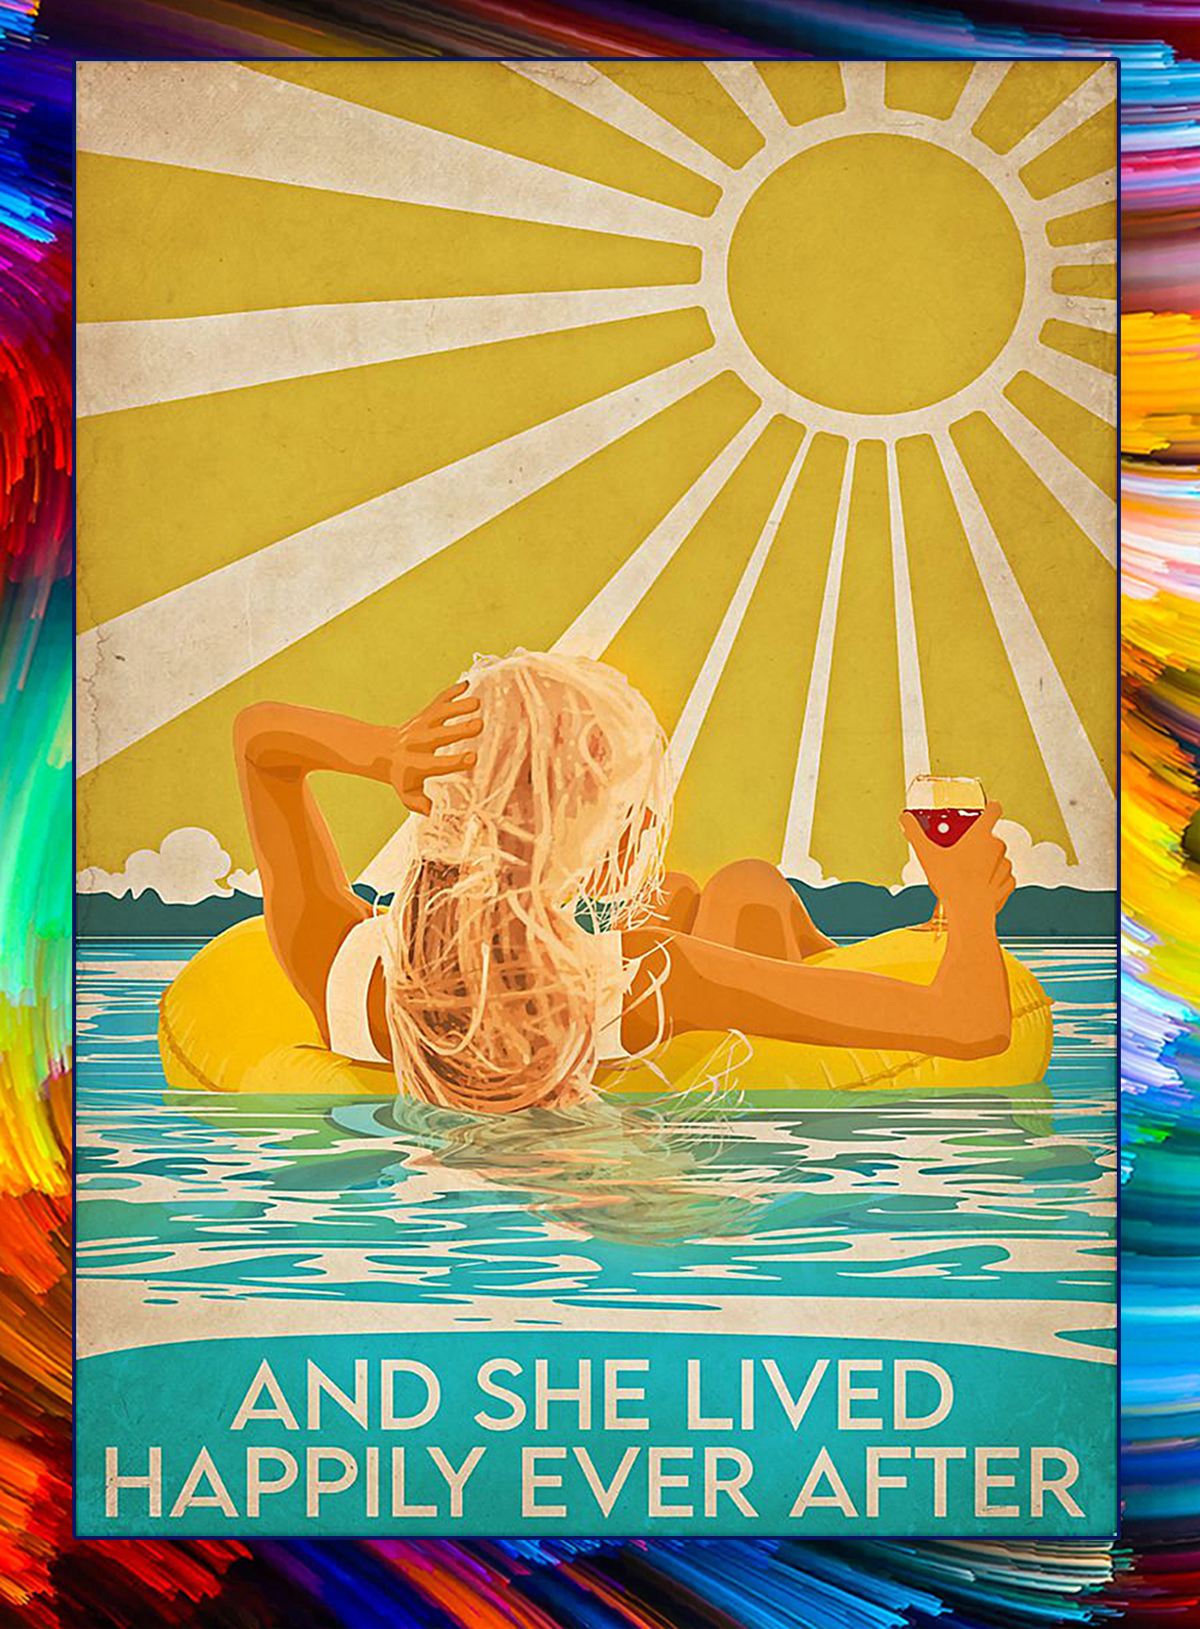 Swimming blonde girl and she lived happily after poster - A1